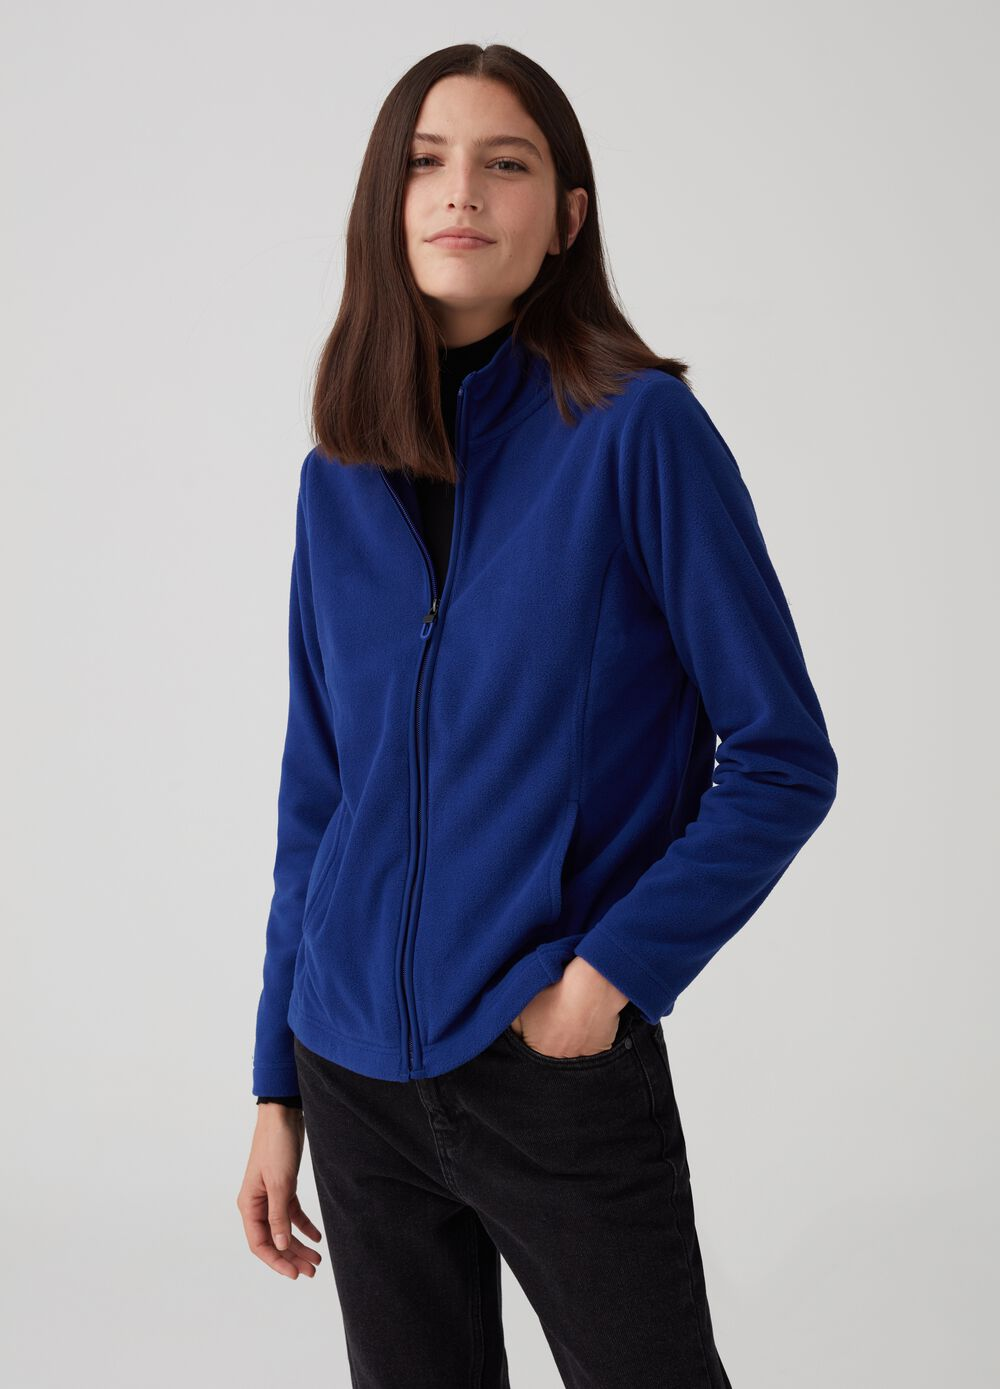 Full-zip sustainable fleece